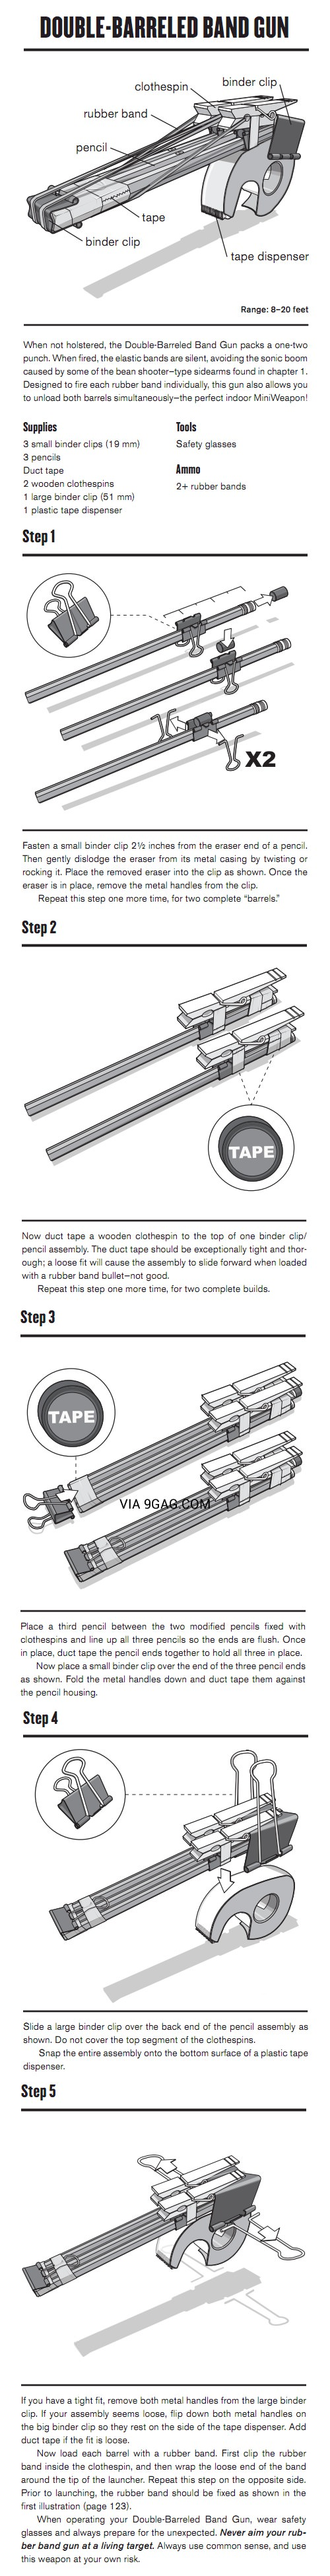 I need to make this Double-Barreled Band Gun!